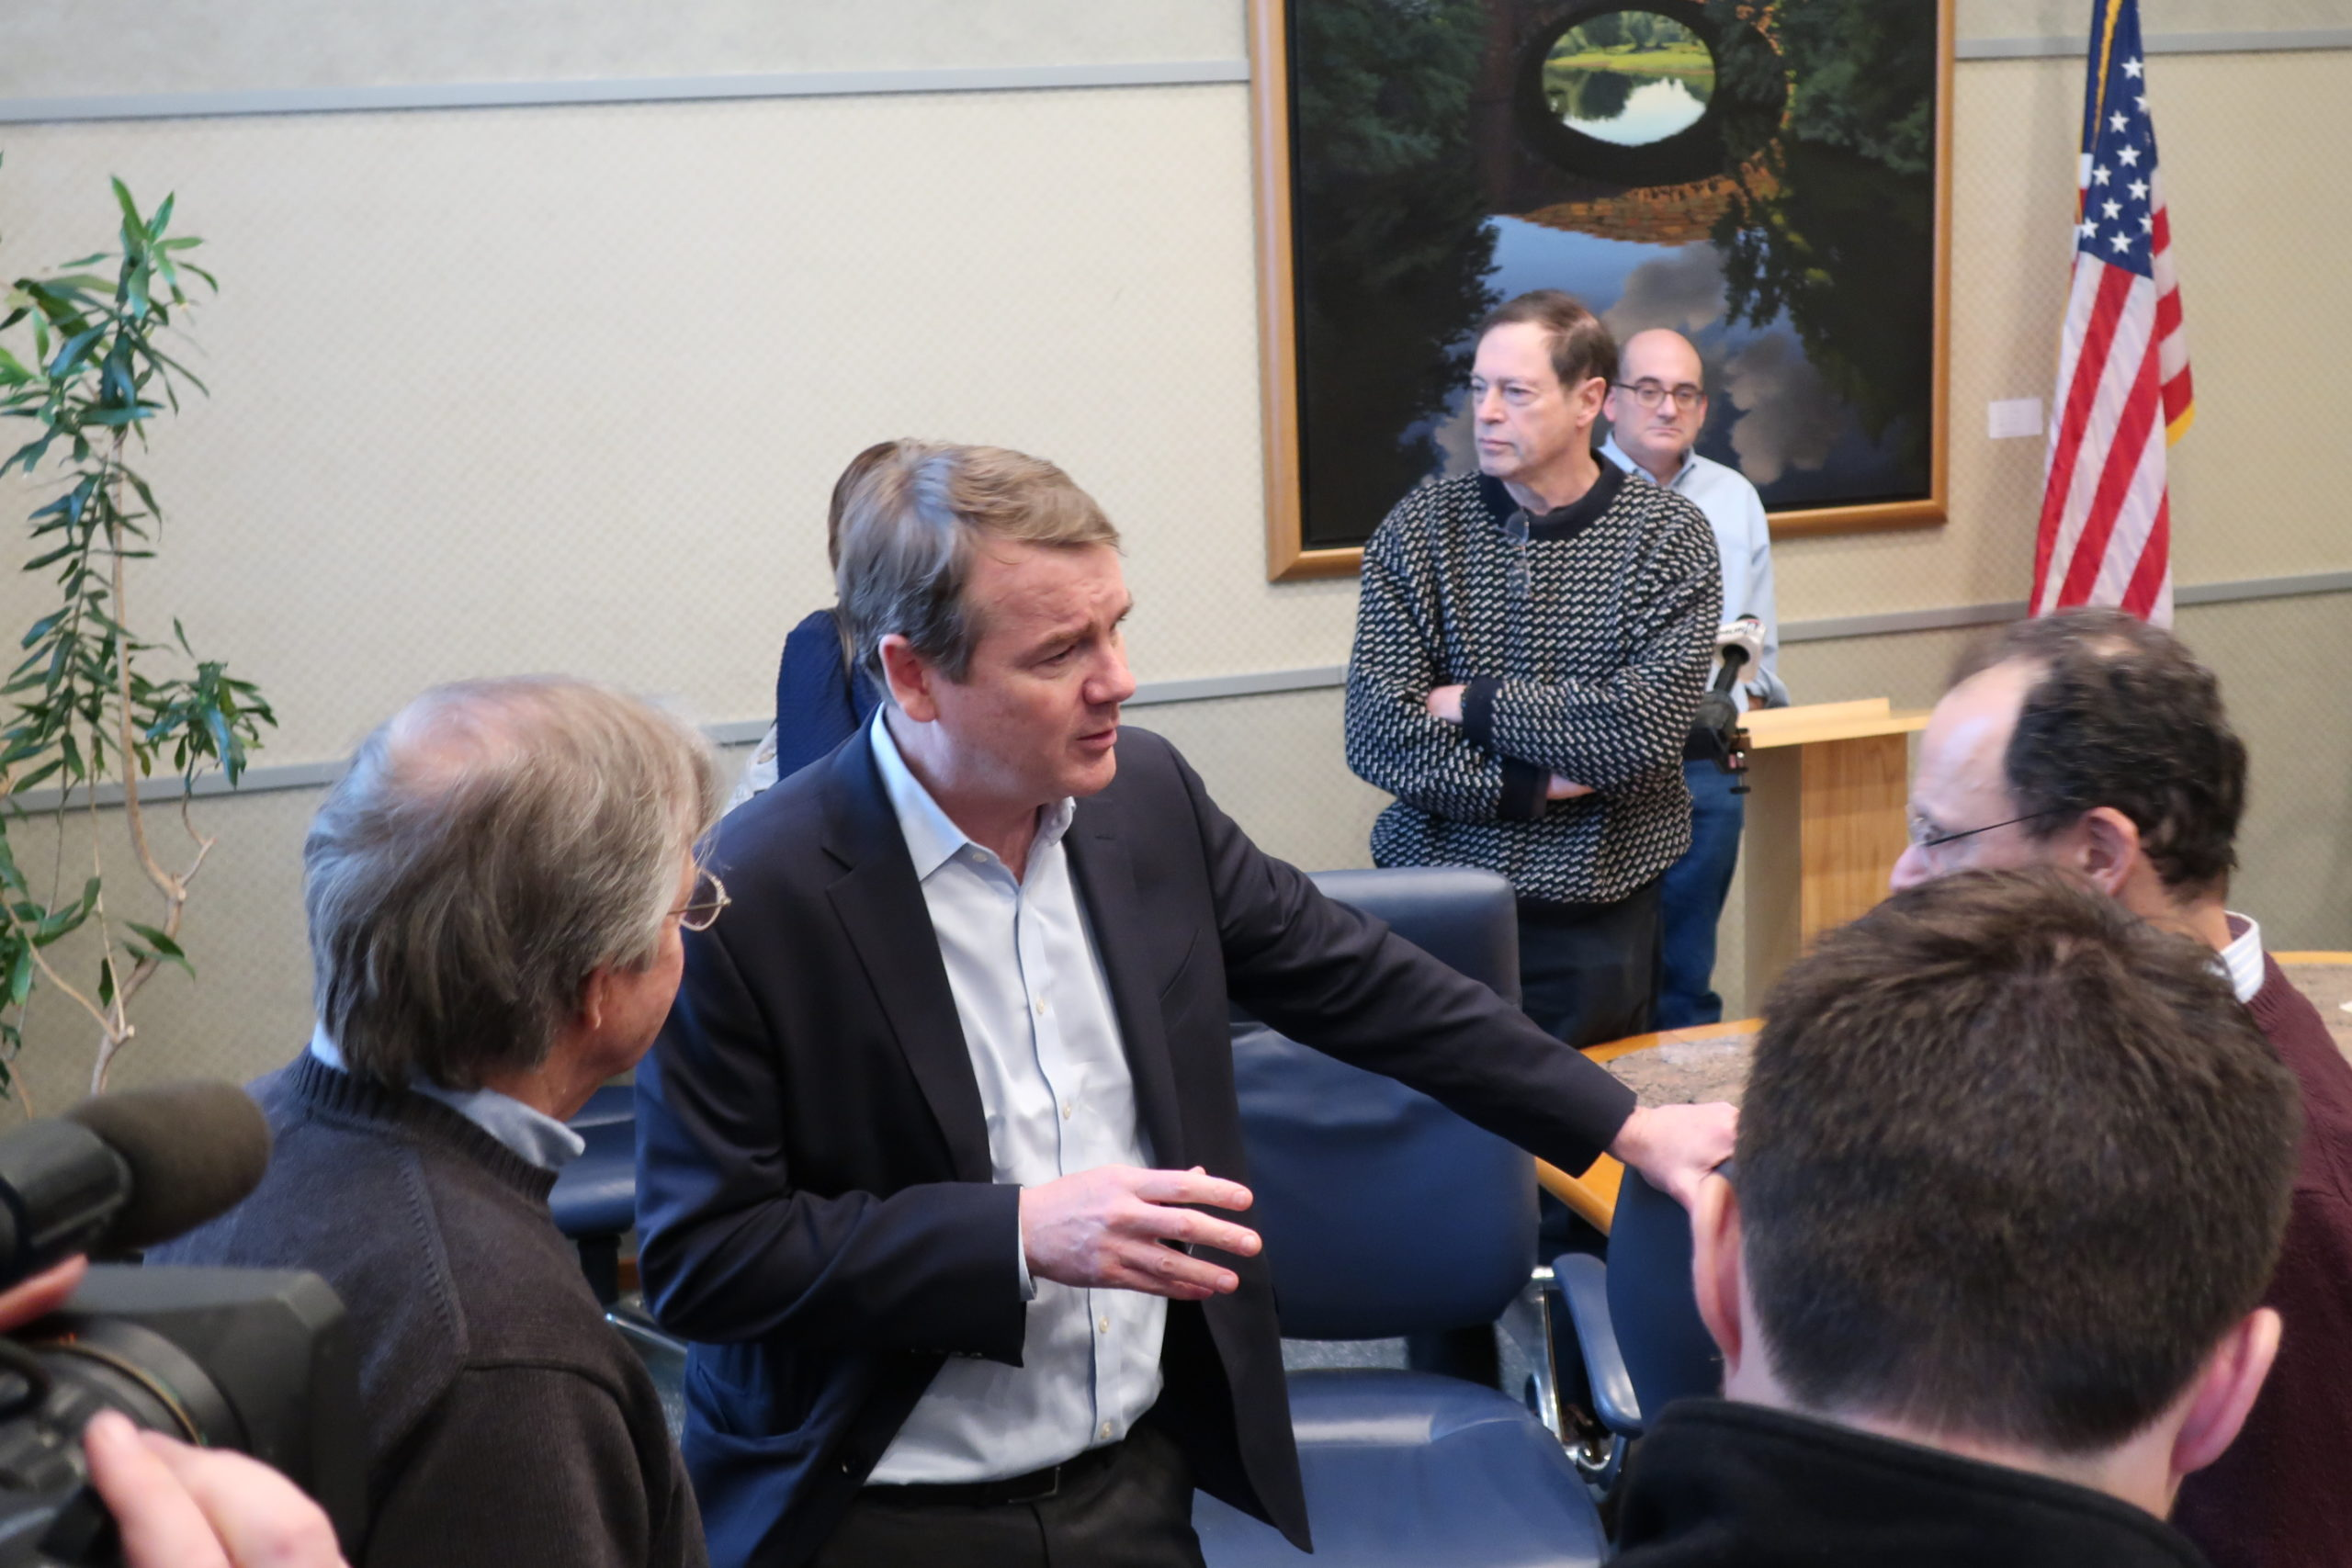 Michael Bennet talking to voters after a meet and greet event in Manchester on February 7, 2020.